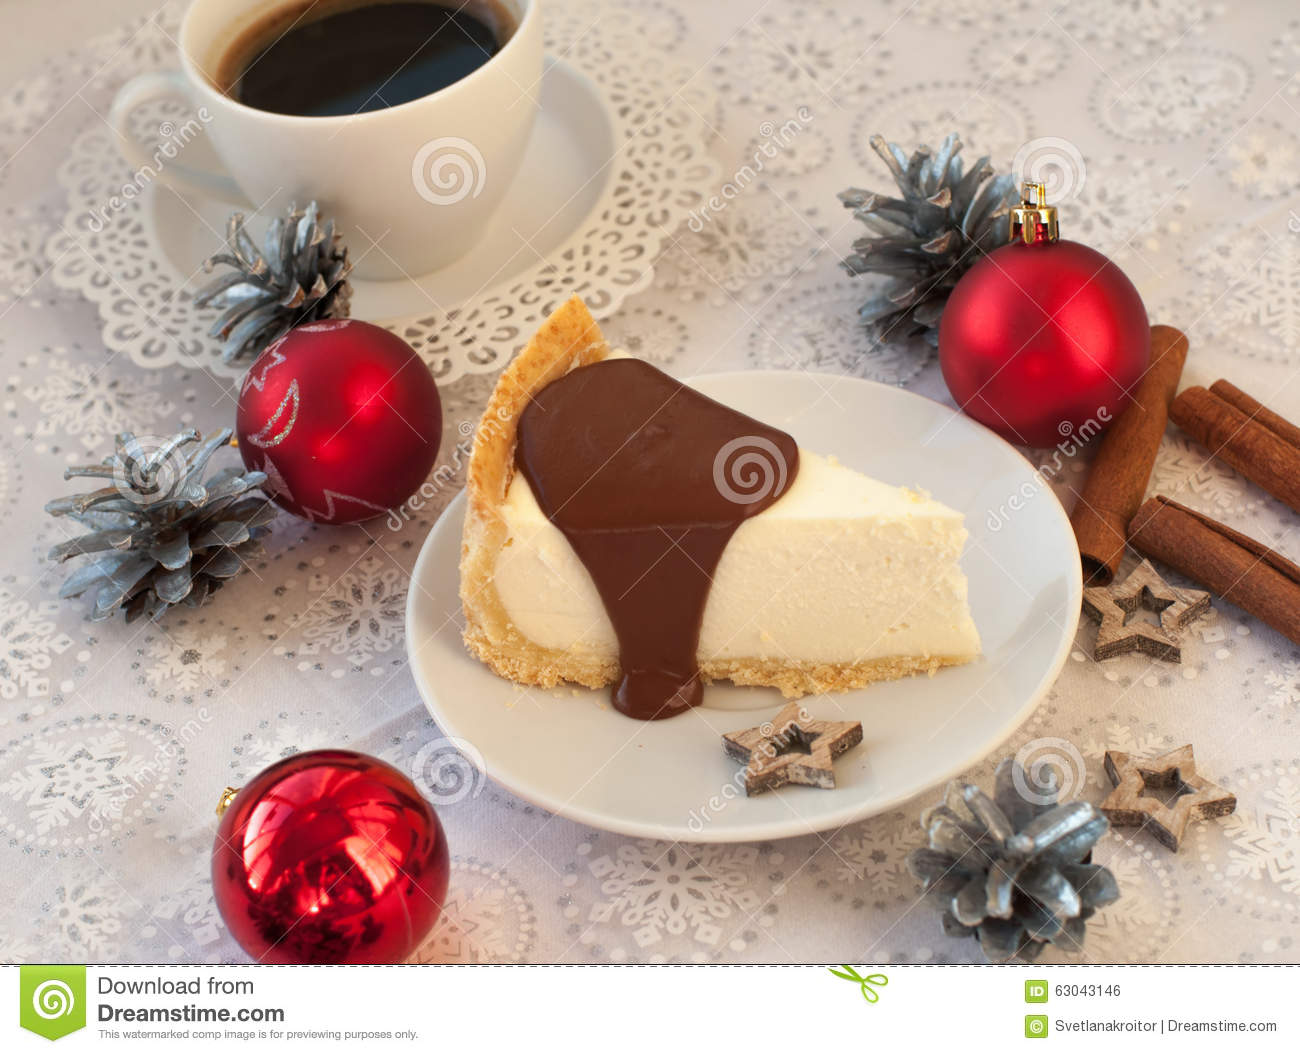 A A Piece Of An Appetizing Cheese Cake With Melted Chocolate On It. A Cup Of Coffee. Silver Cones. Cinnamon Sticks And Christmas-t Stock Photo ...